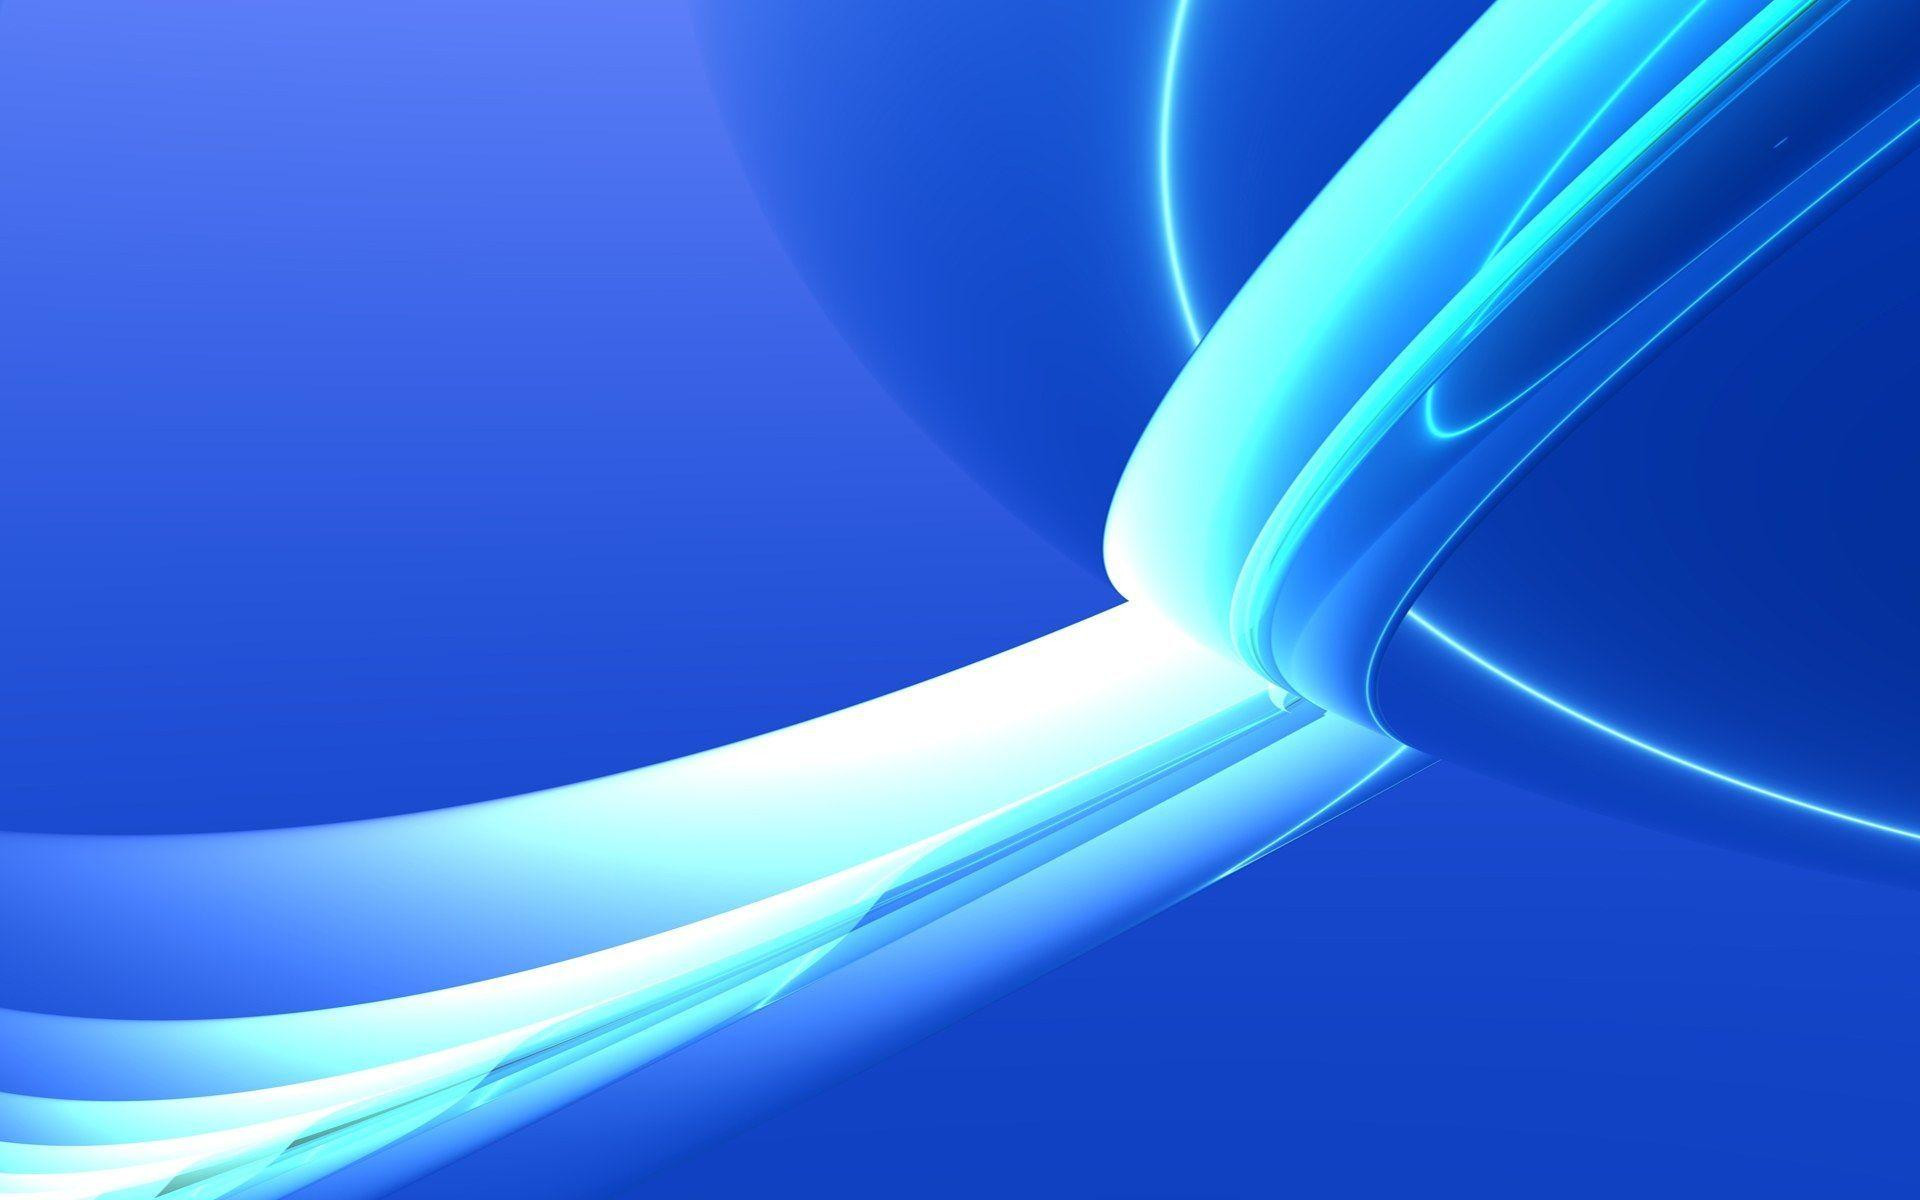 Download Wide Blue Background Abstract 1080p Wallpaper 1920x1200